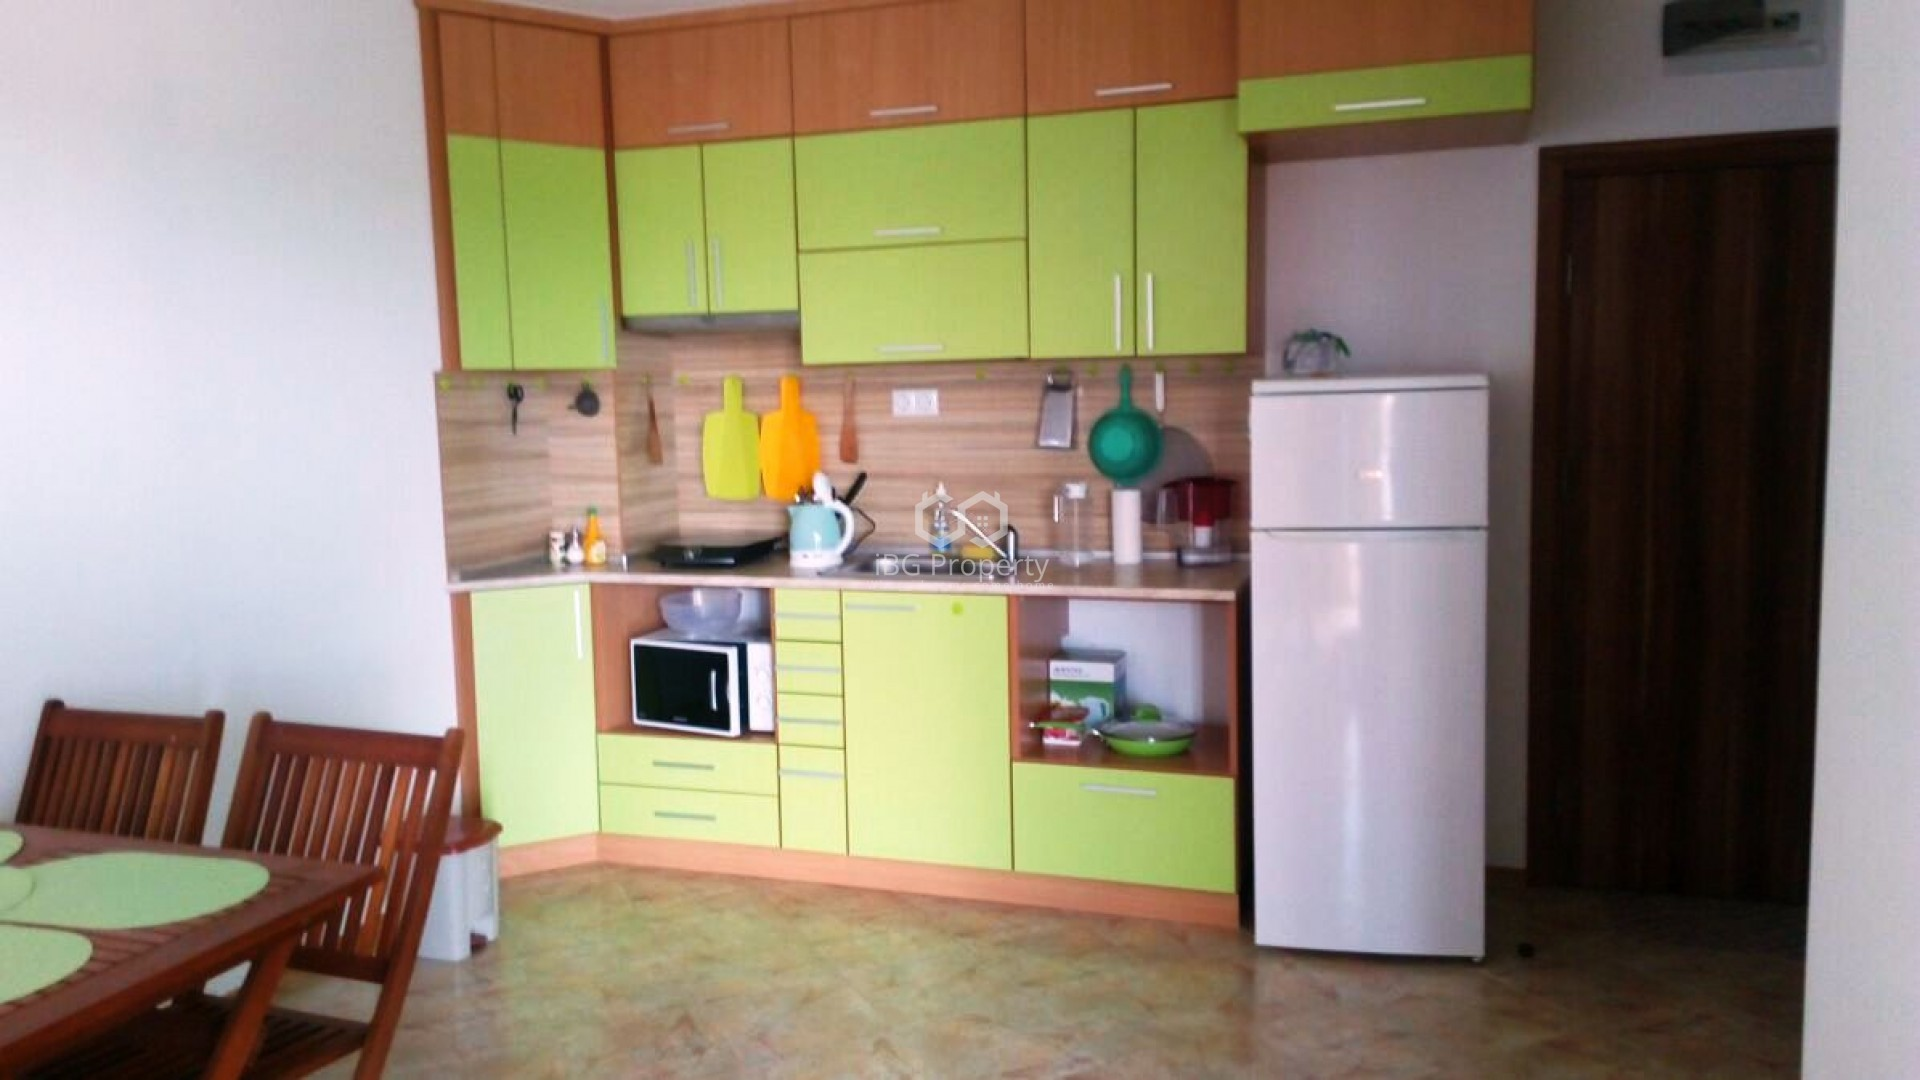 One bedroom apartment Byala 56 m2